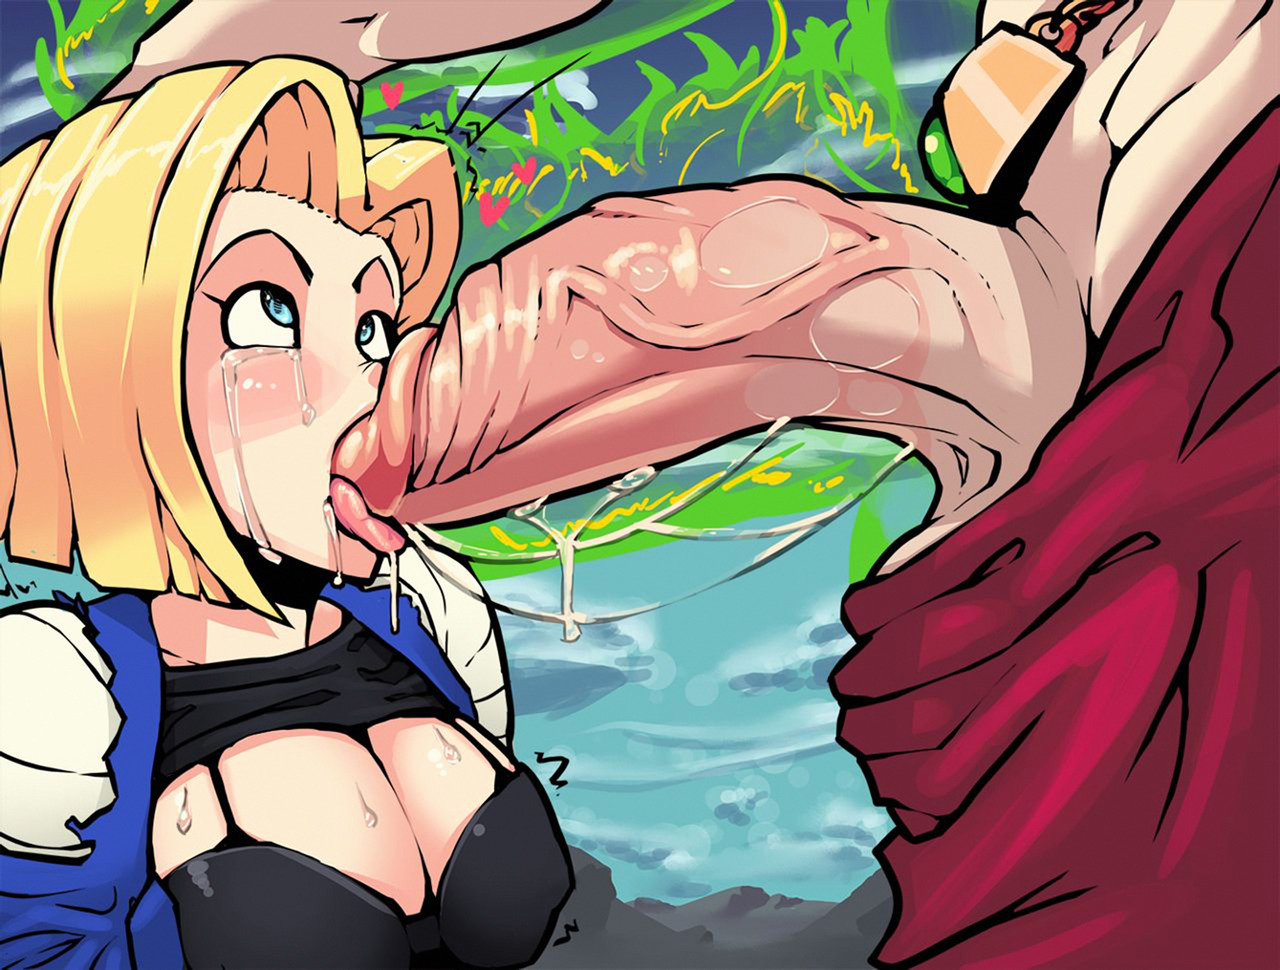 Android Girl 3D Porn Hentai broly x android 18 comic porn - hd porn comics